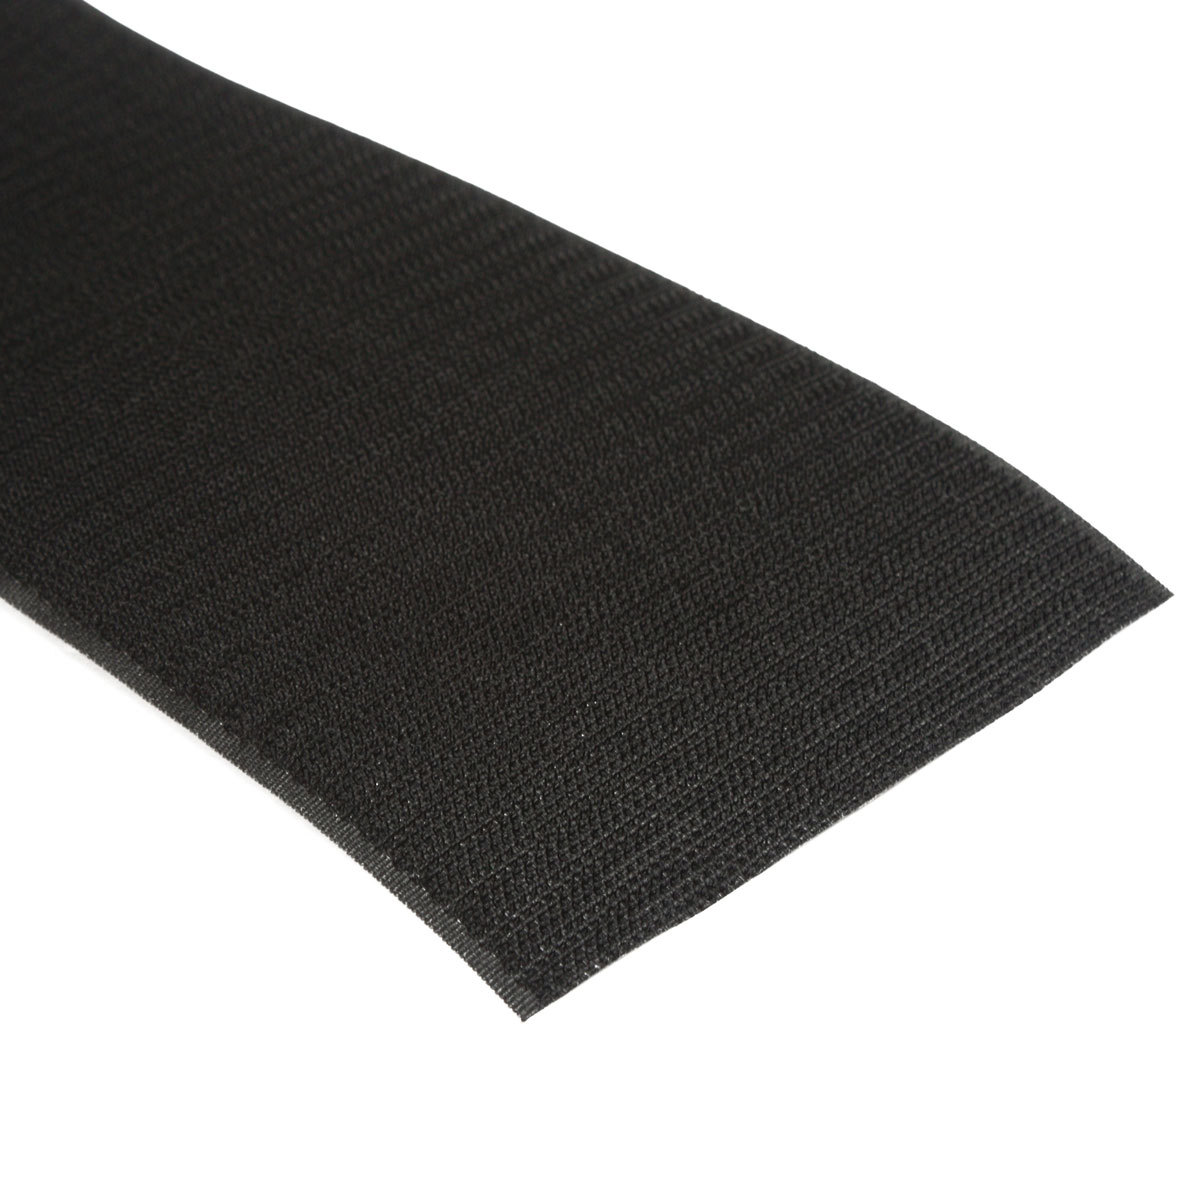 5m length 100mm width floor cable wrap tape carpet nylon wire organiser cover ebay. Black Bedroom Furniture Sets. Home Design Ideas